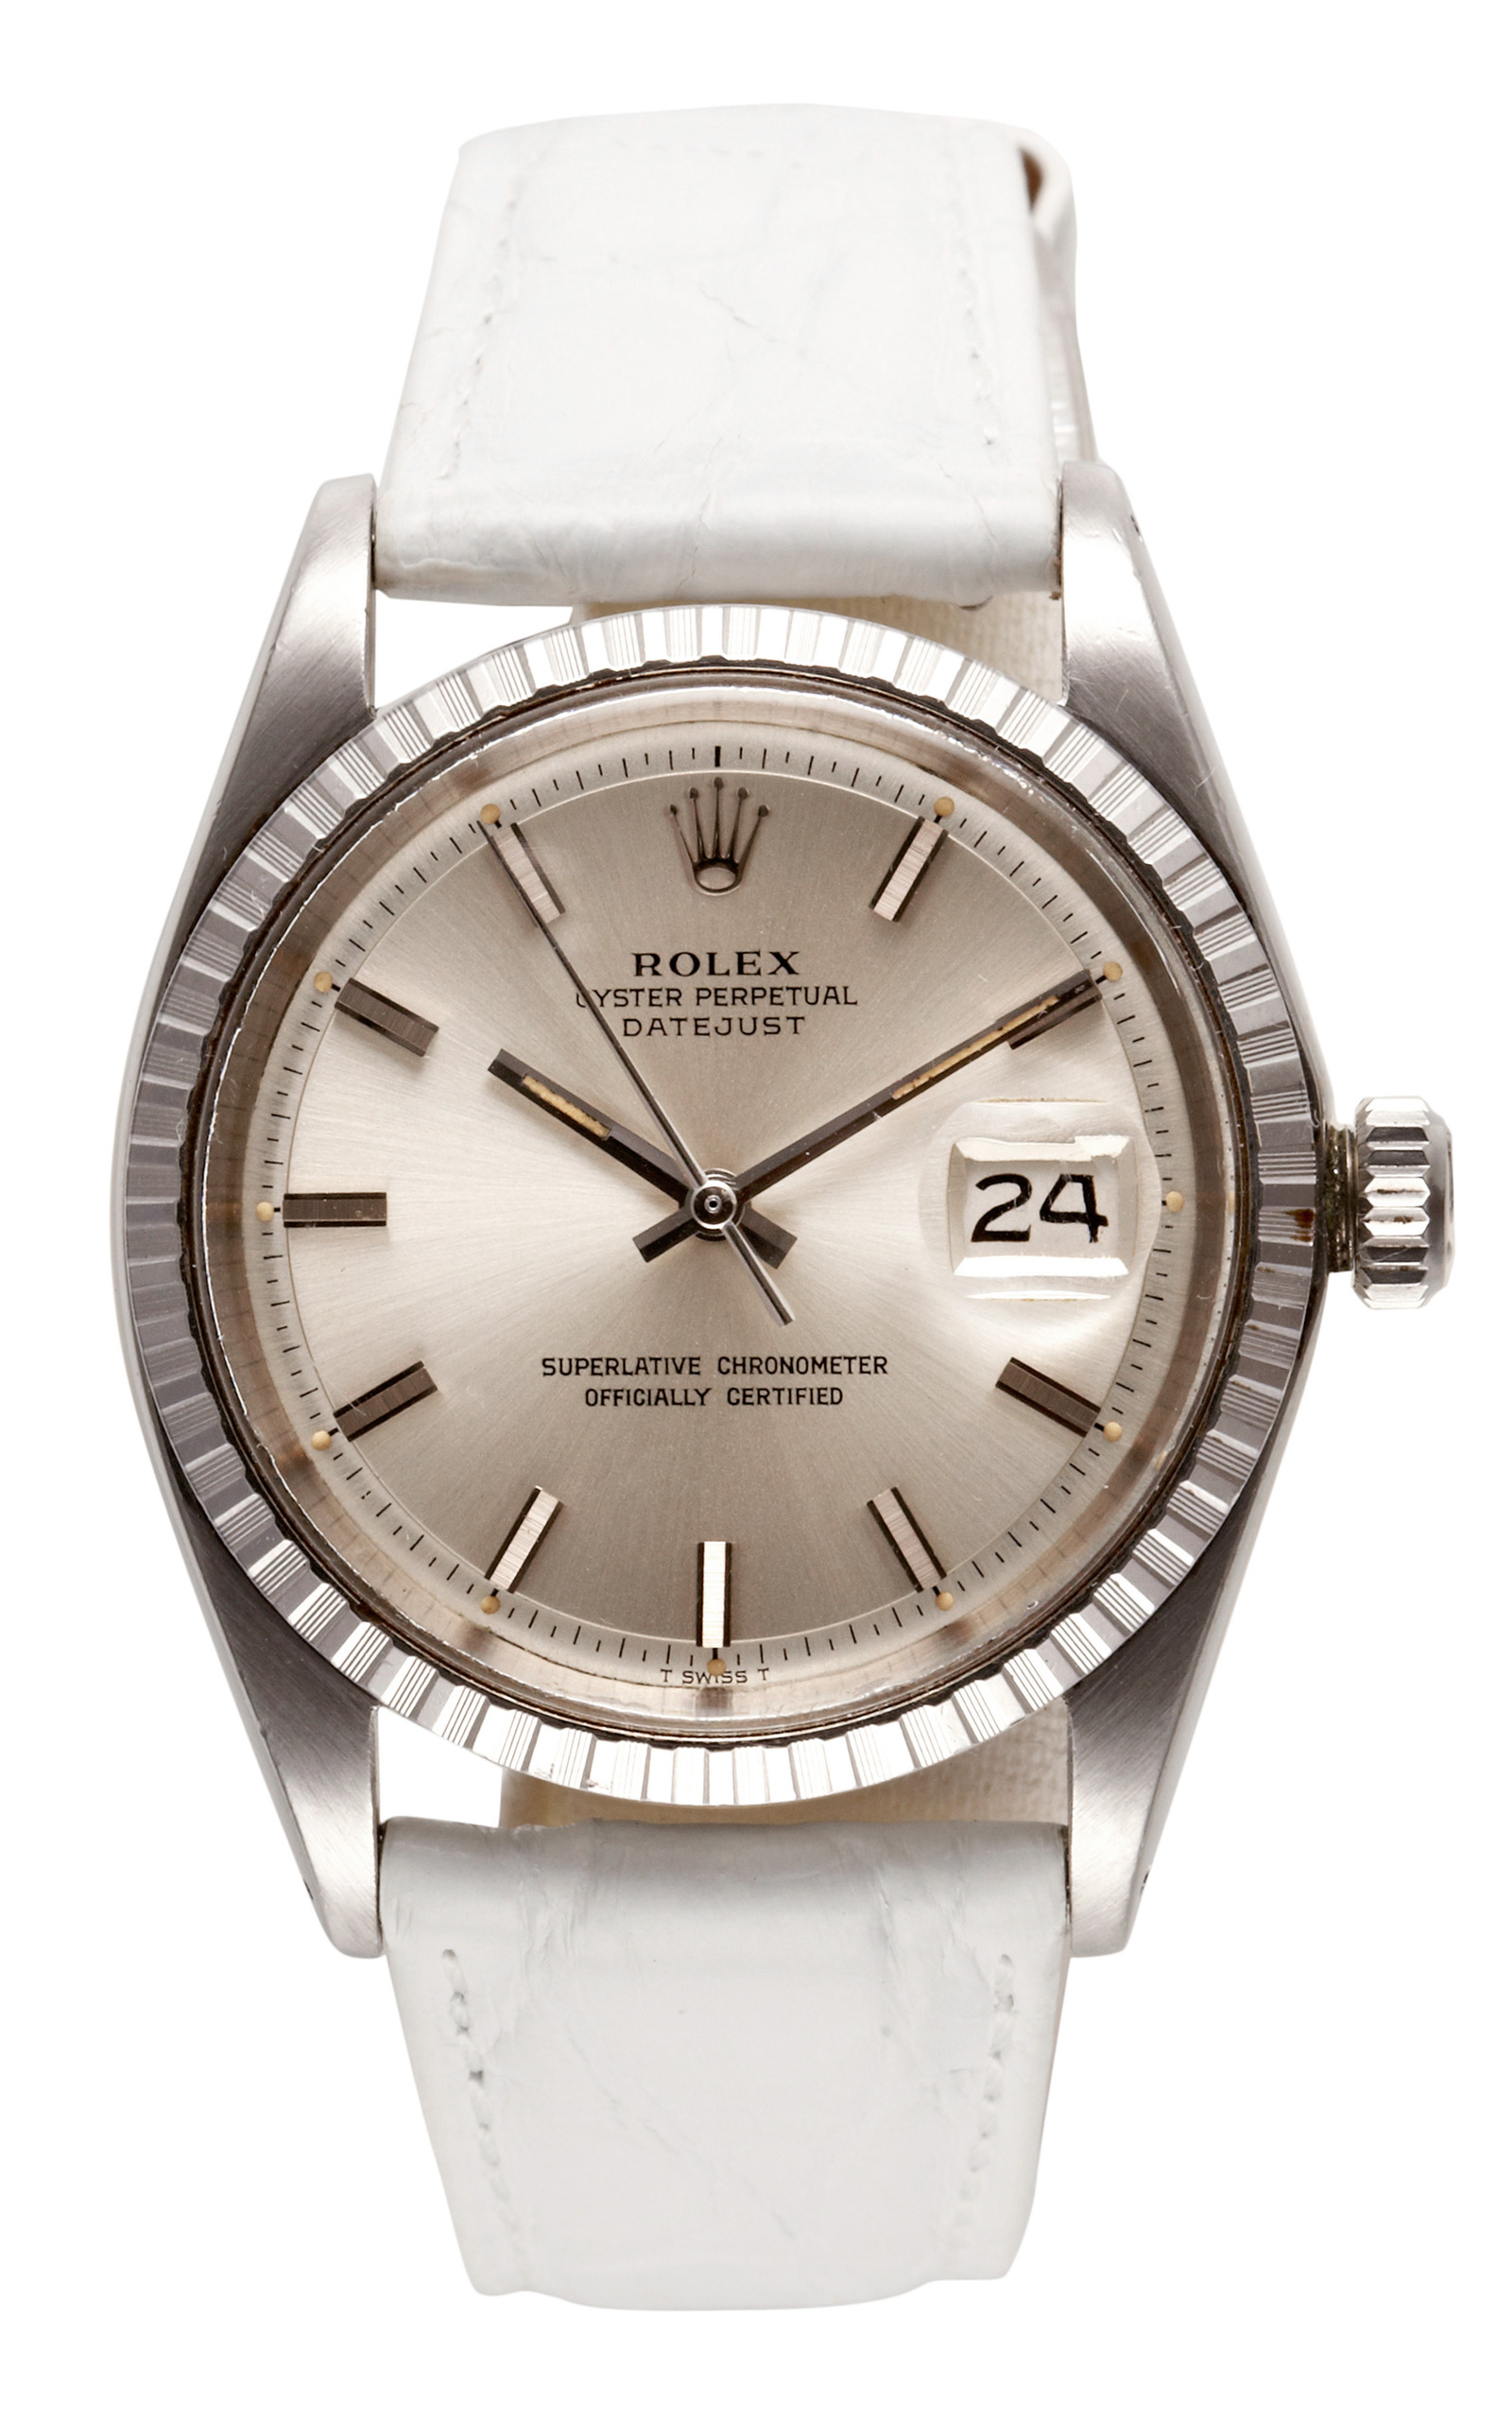 Vintage stainless steel rolex oyster perpetual moda operandi for Vintage rolex oyster